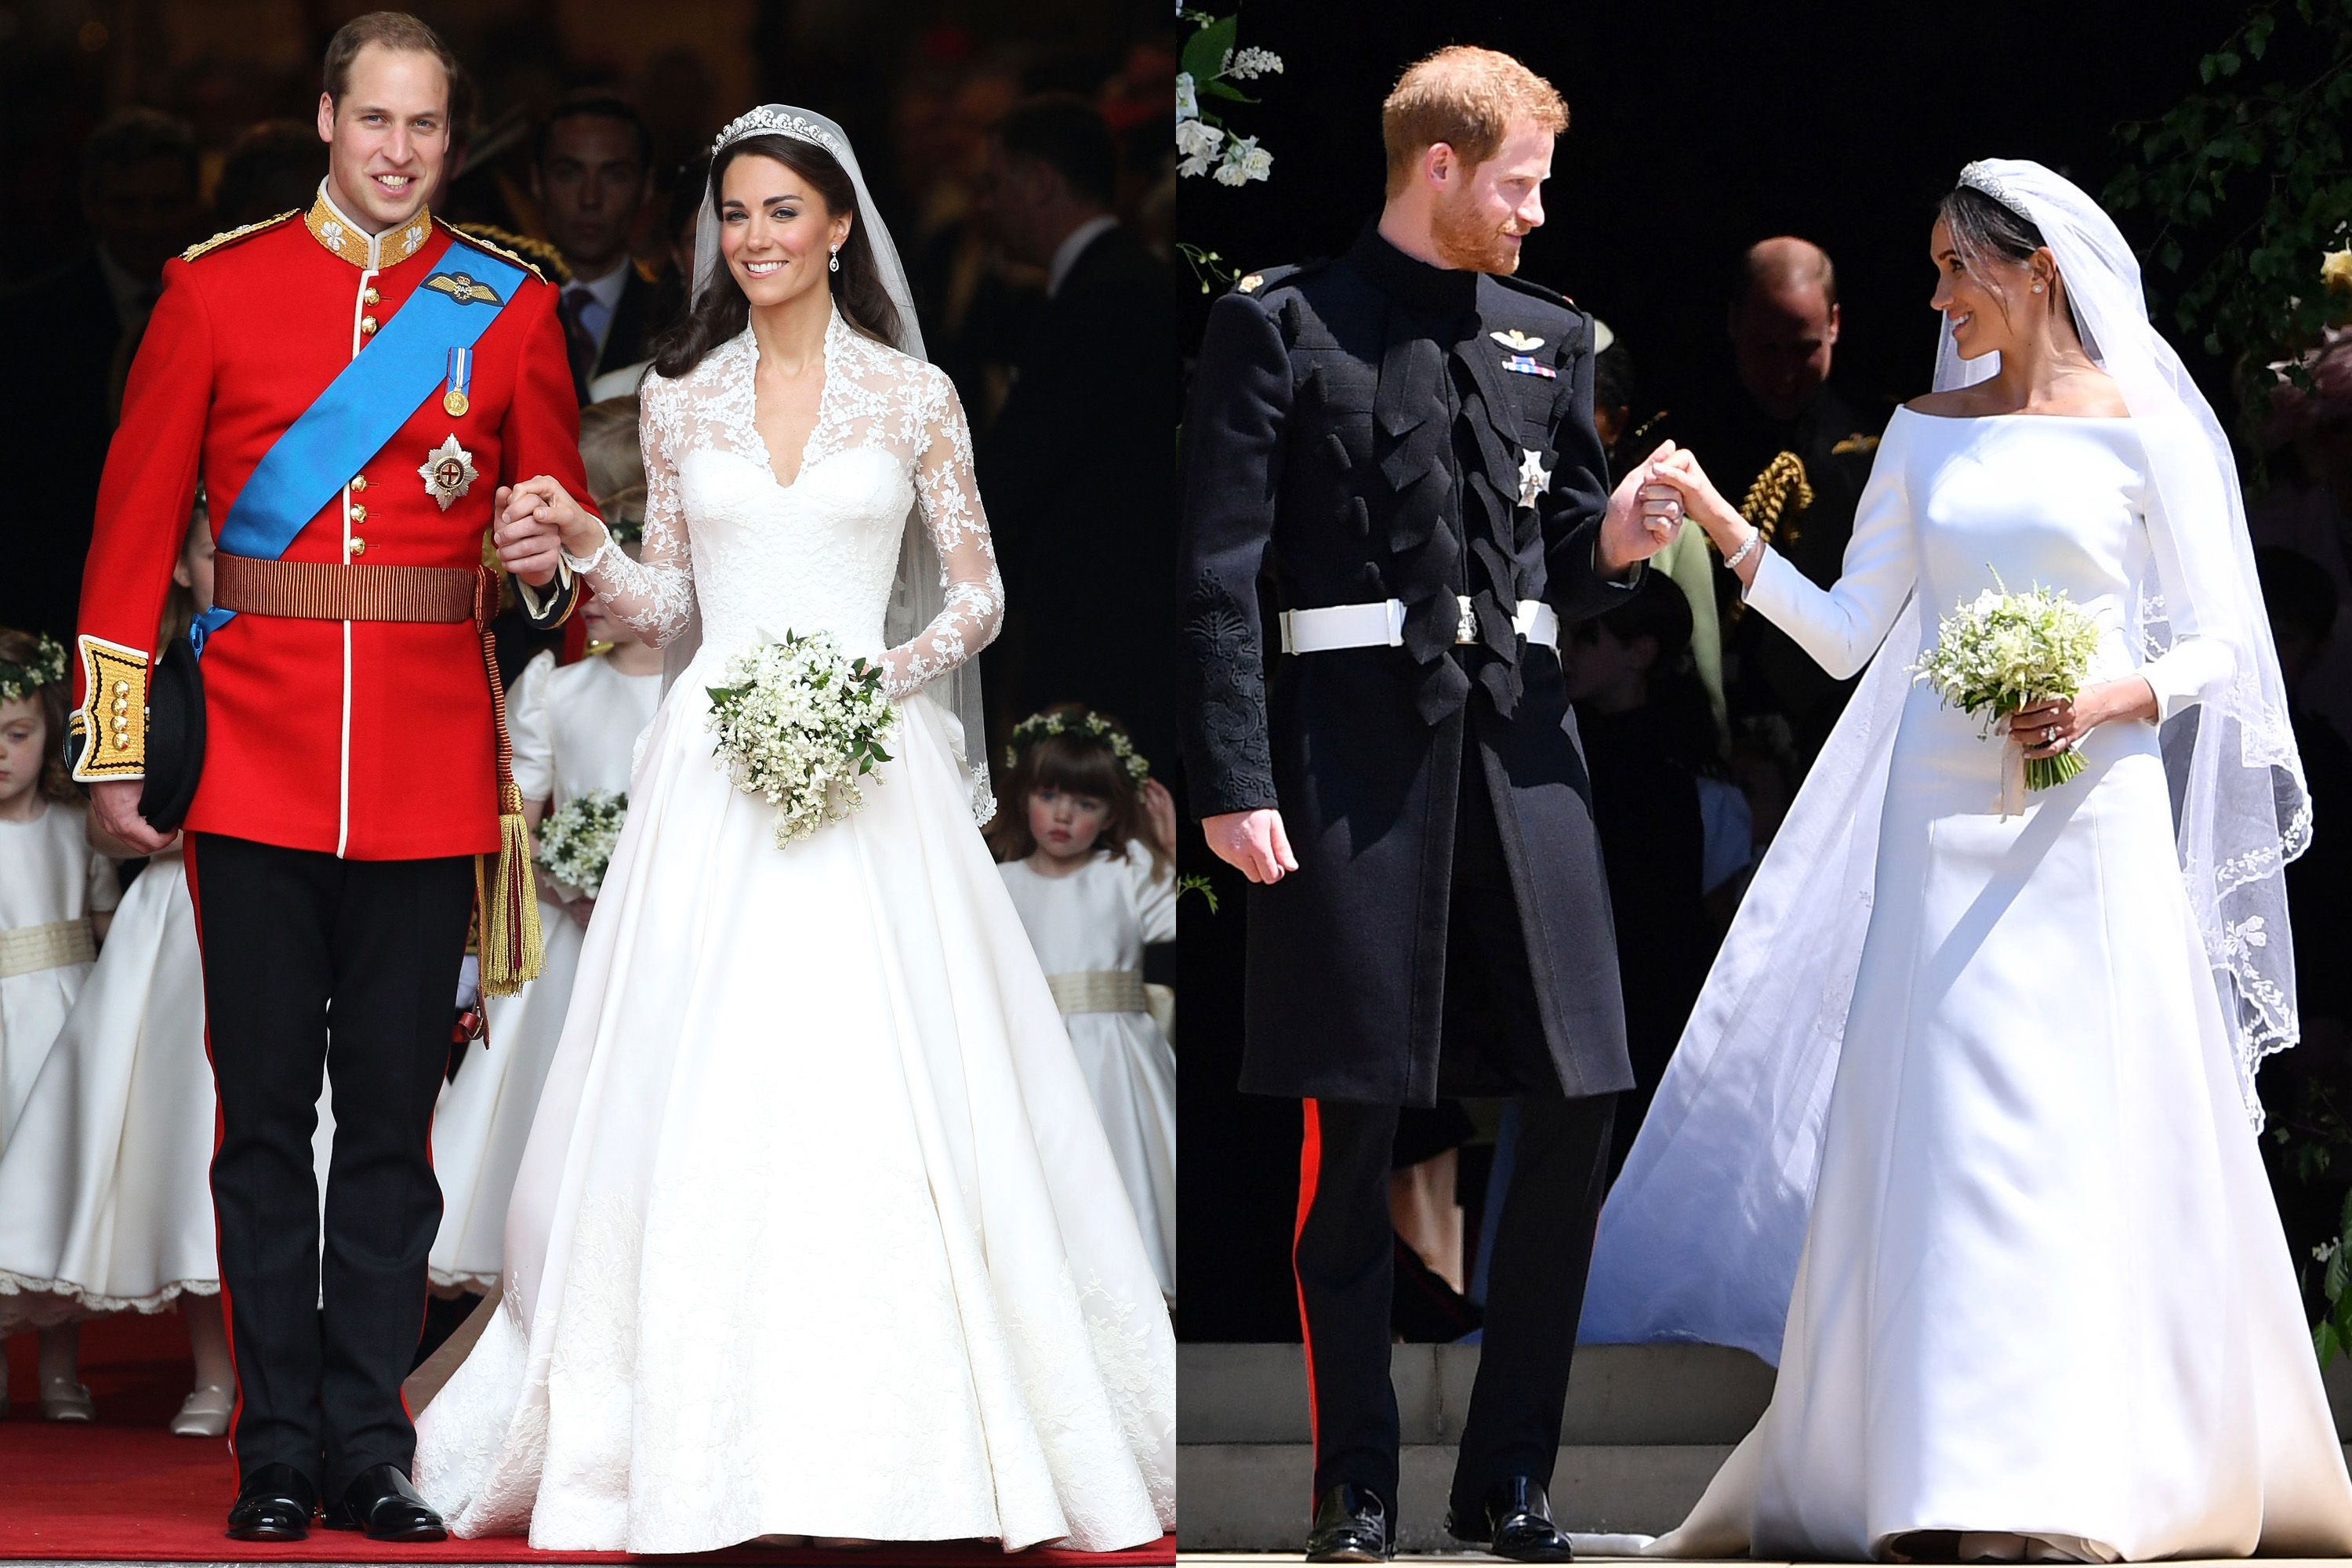 meghan markle s royal wedding dress compared to kate middleton s wedding dress royal wedding dress compared to kate